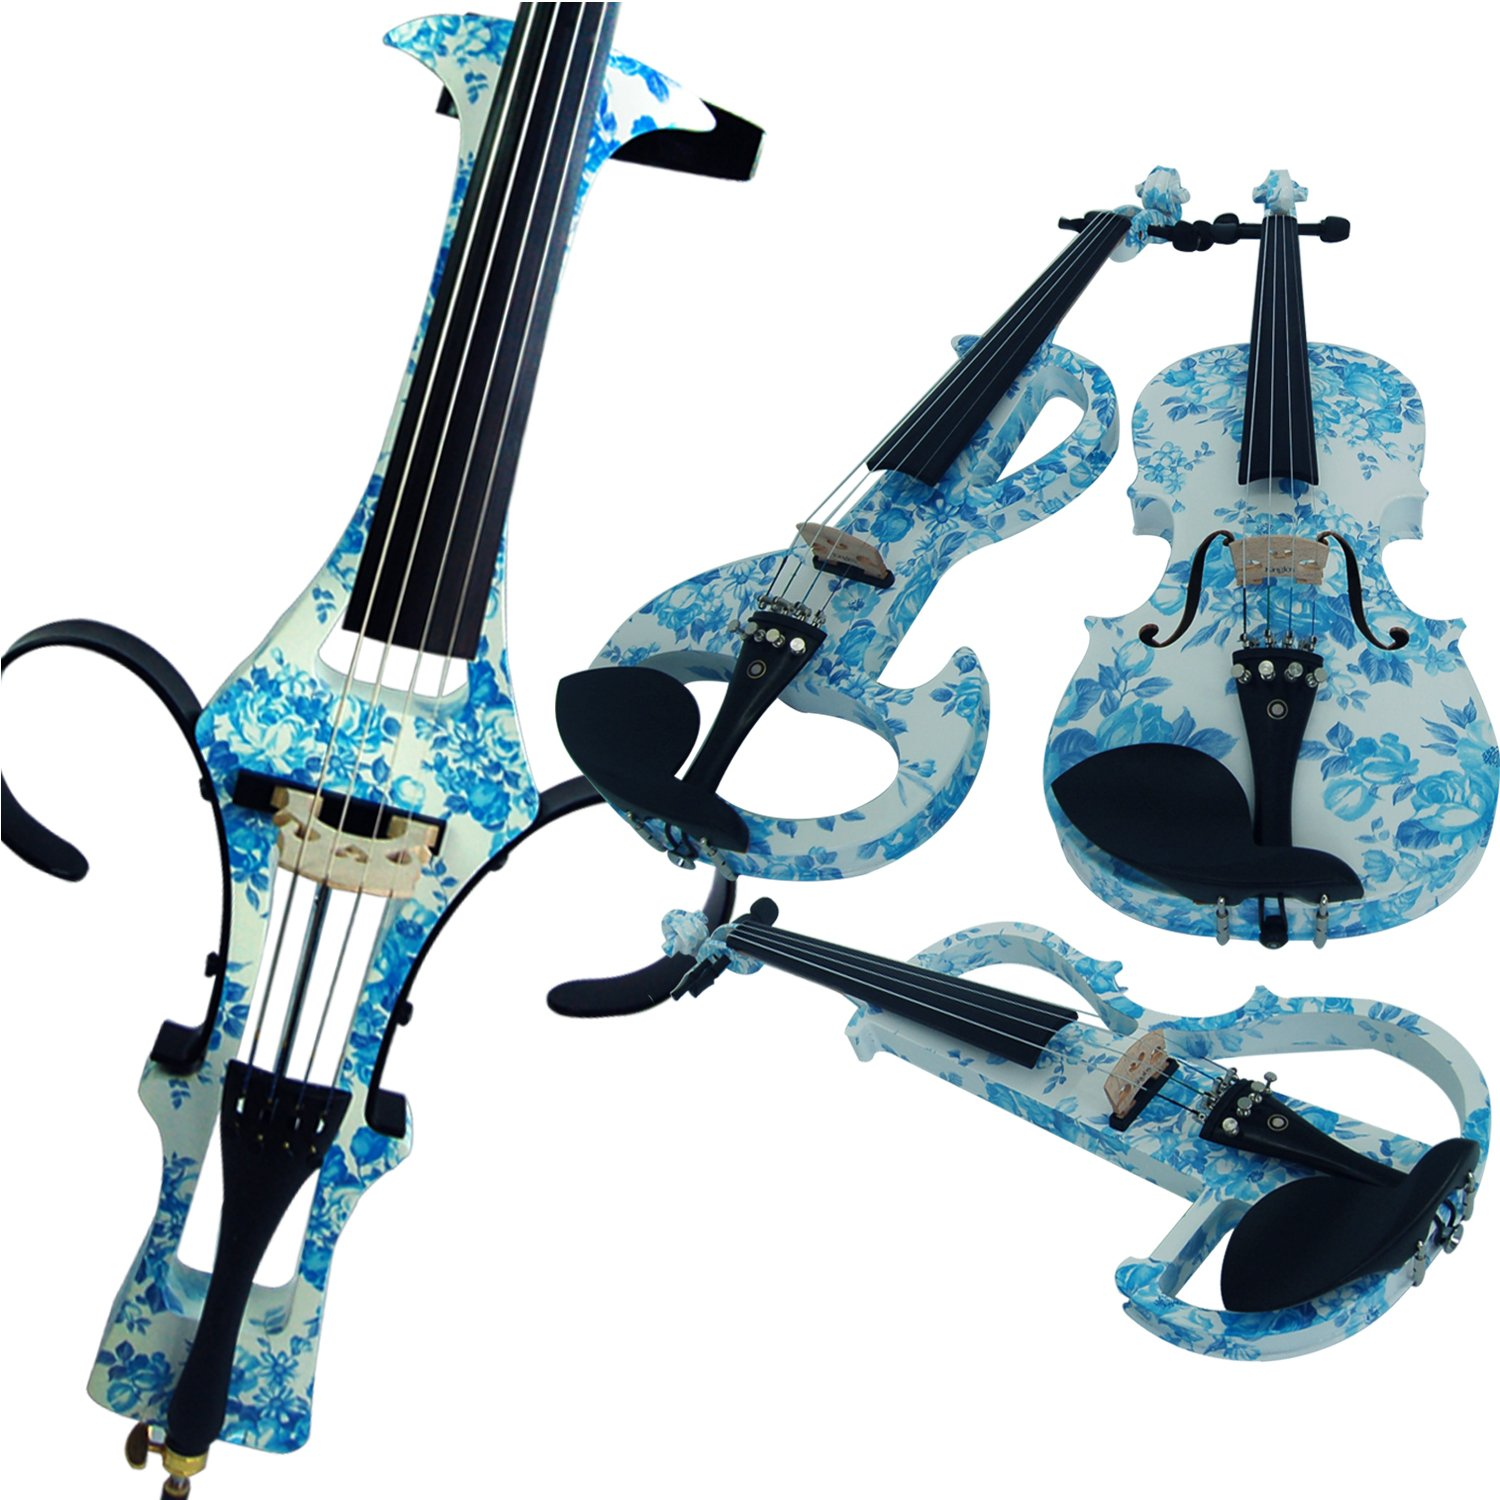 Aliyes Wood Electric Violin Full Size 4/4 Intermediate-A Electric Silent White& Blue Flowers Violin Kit With Case, Bow, Rosin, headphones, Shoulder Rest, Strings(ALDSZA-1201)